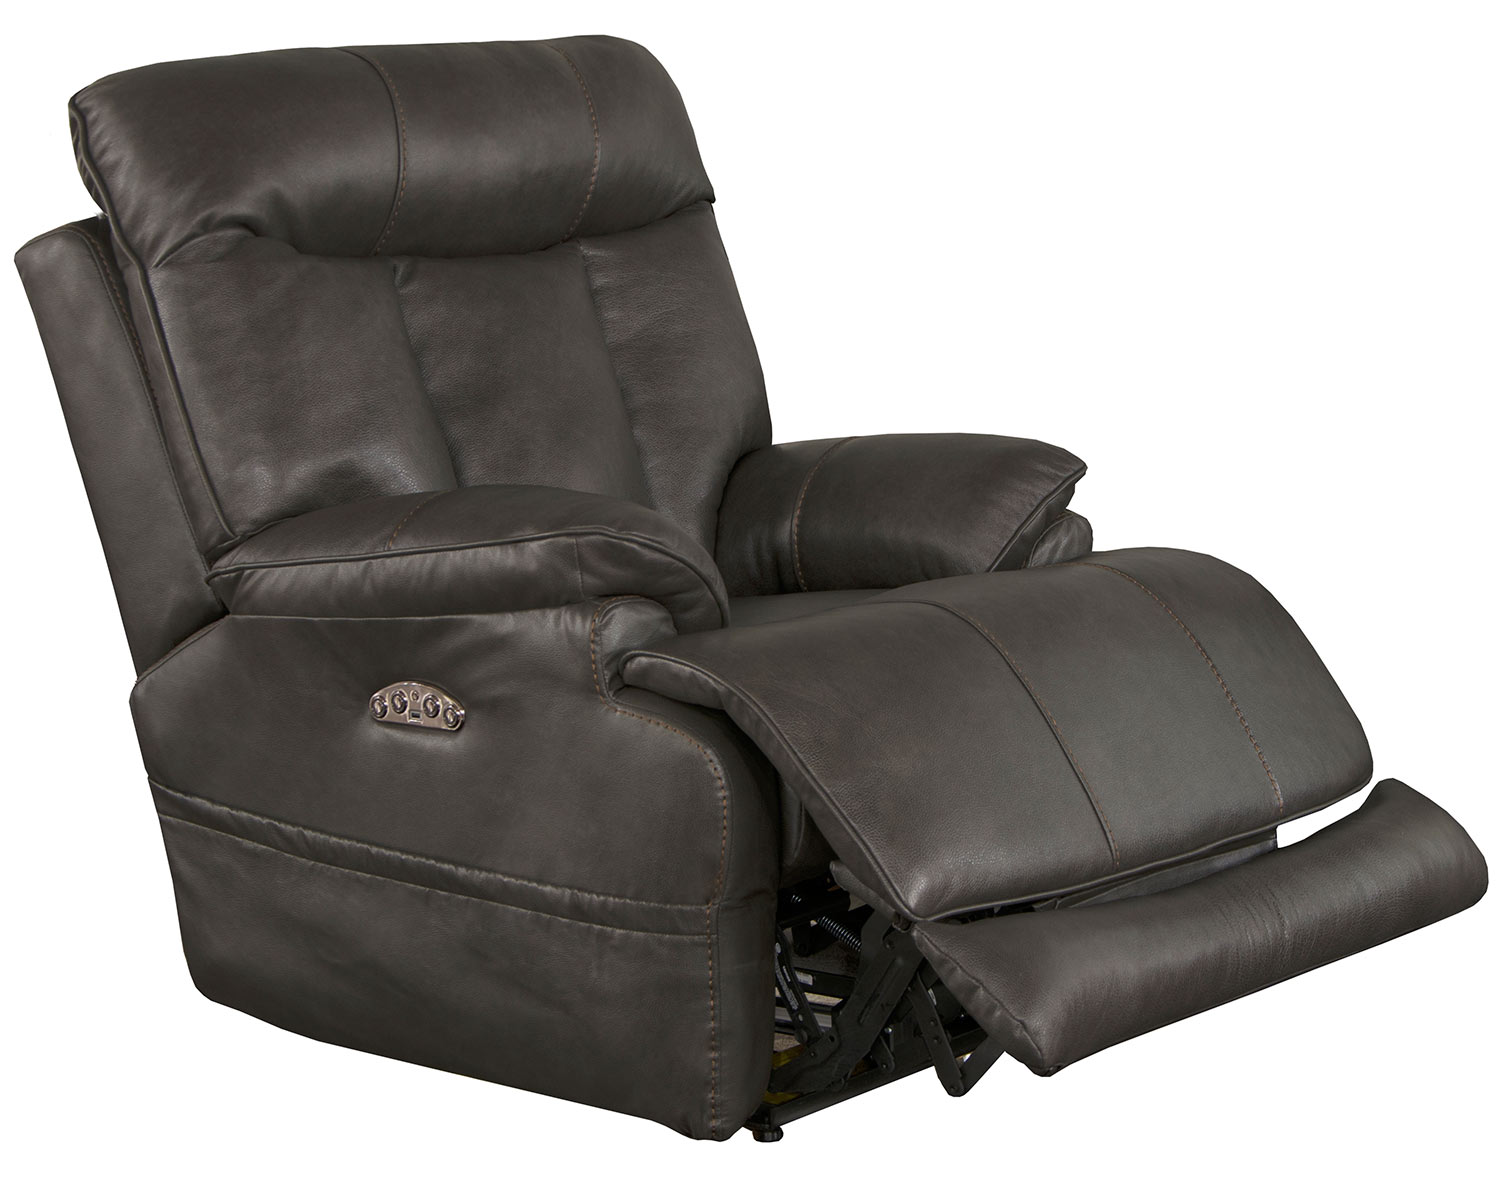 CatNapper Naples Leather Power Recliner Chair - Steel